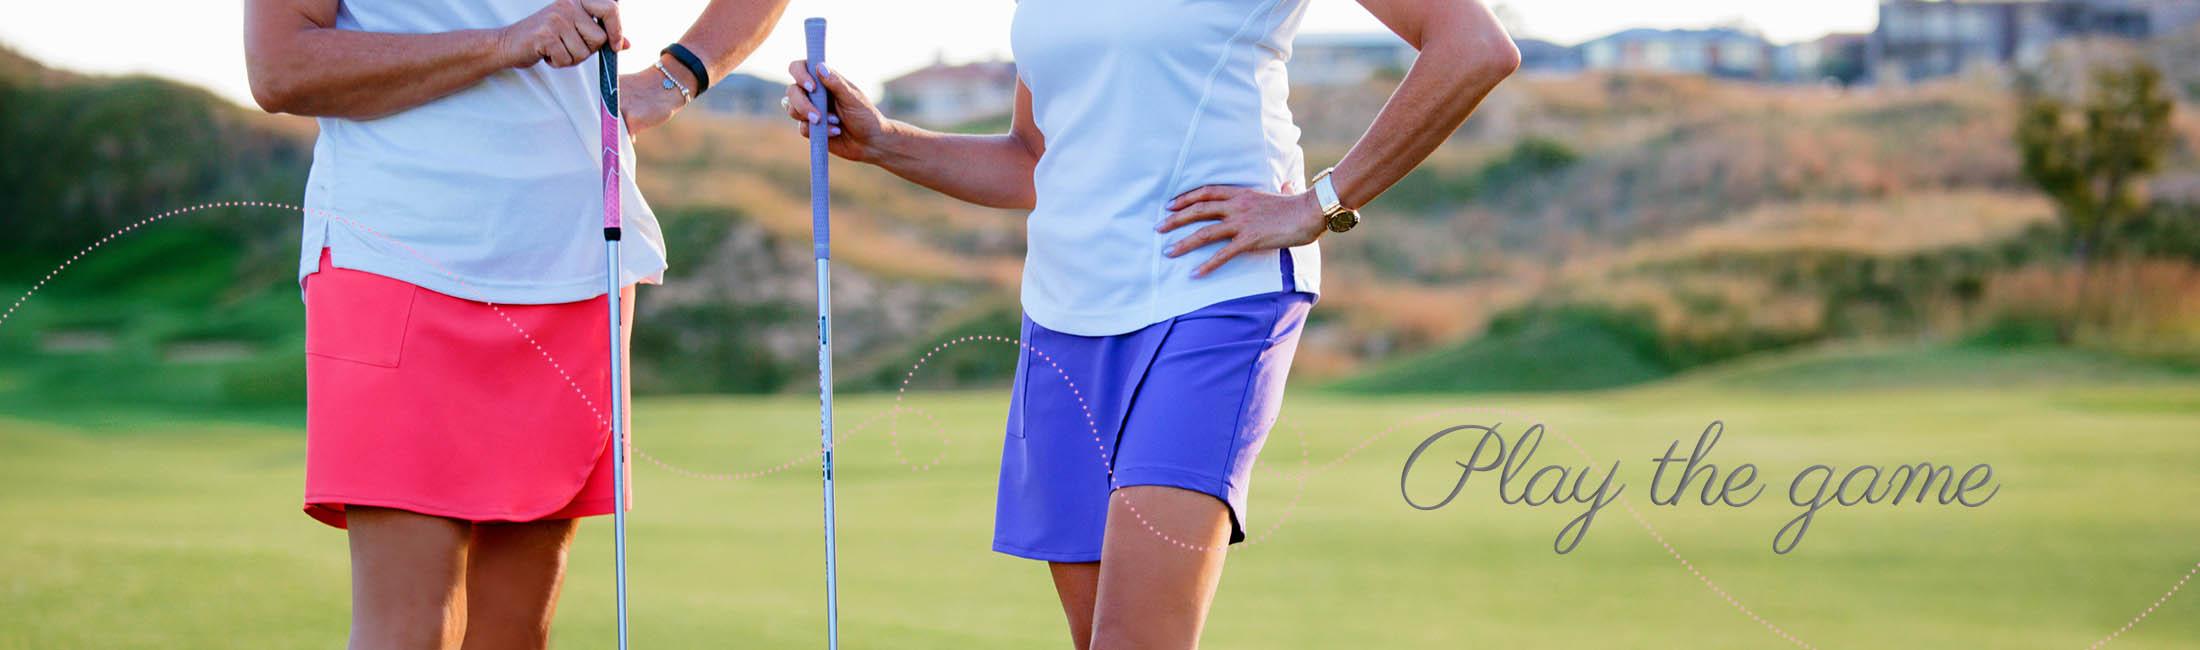 marilyn golf and active wear slider